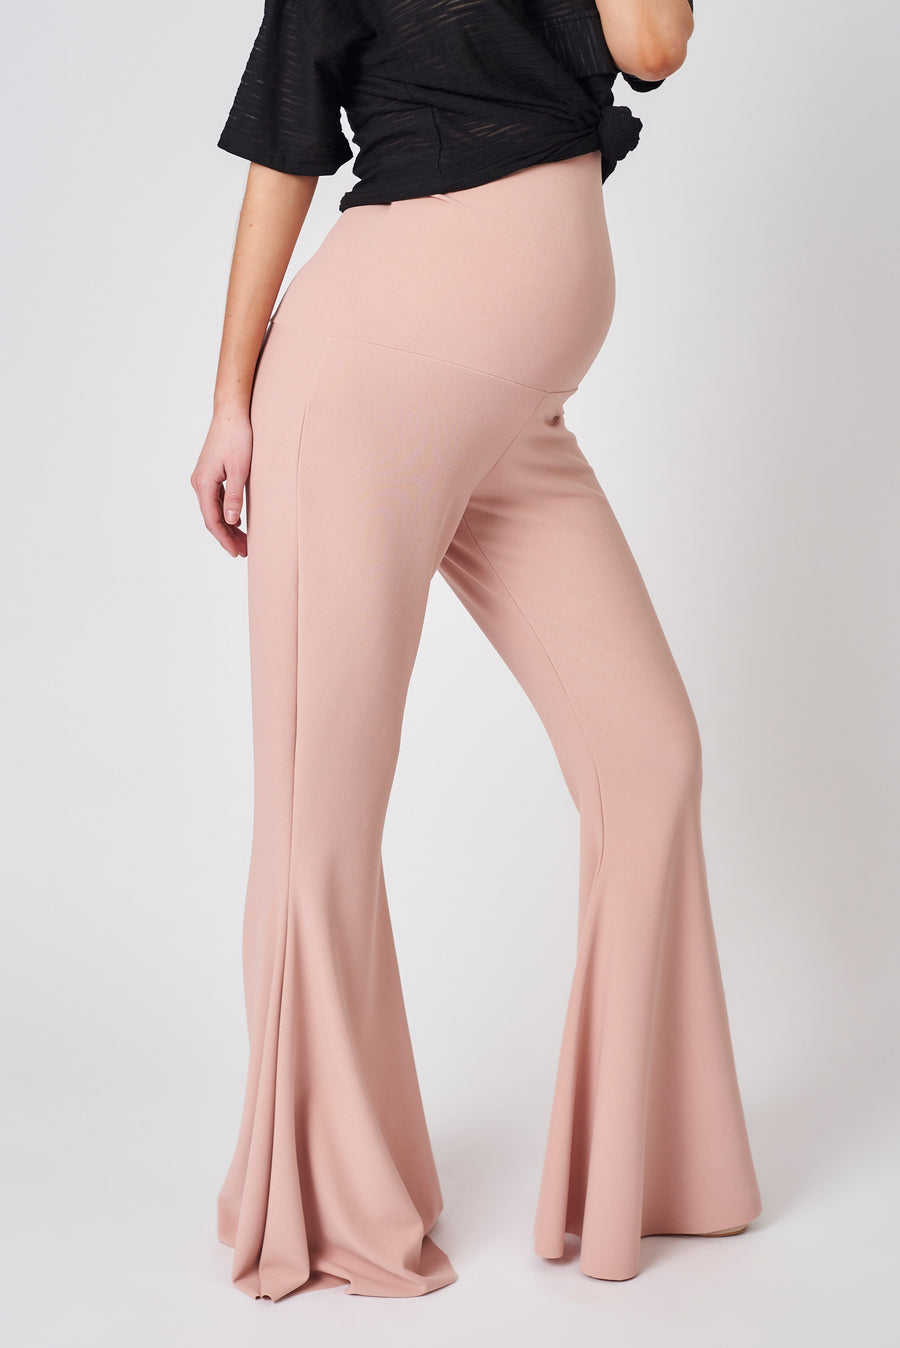 Dusty Pink Maternity Stretch Flares